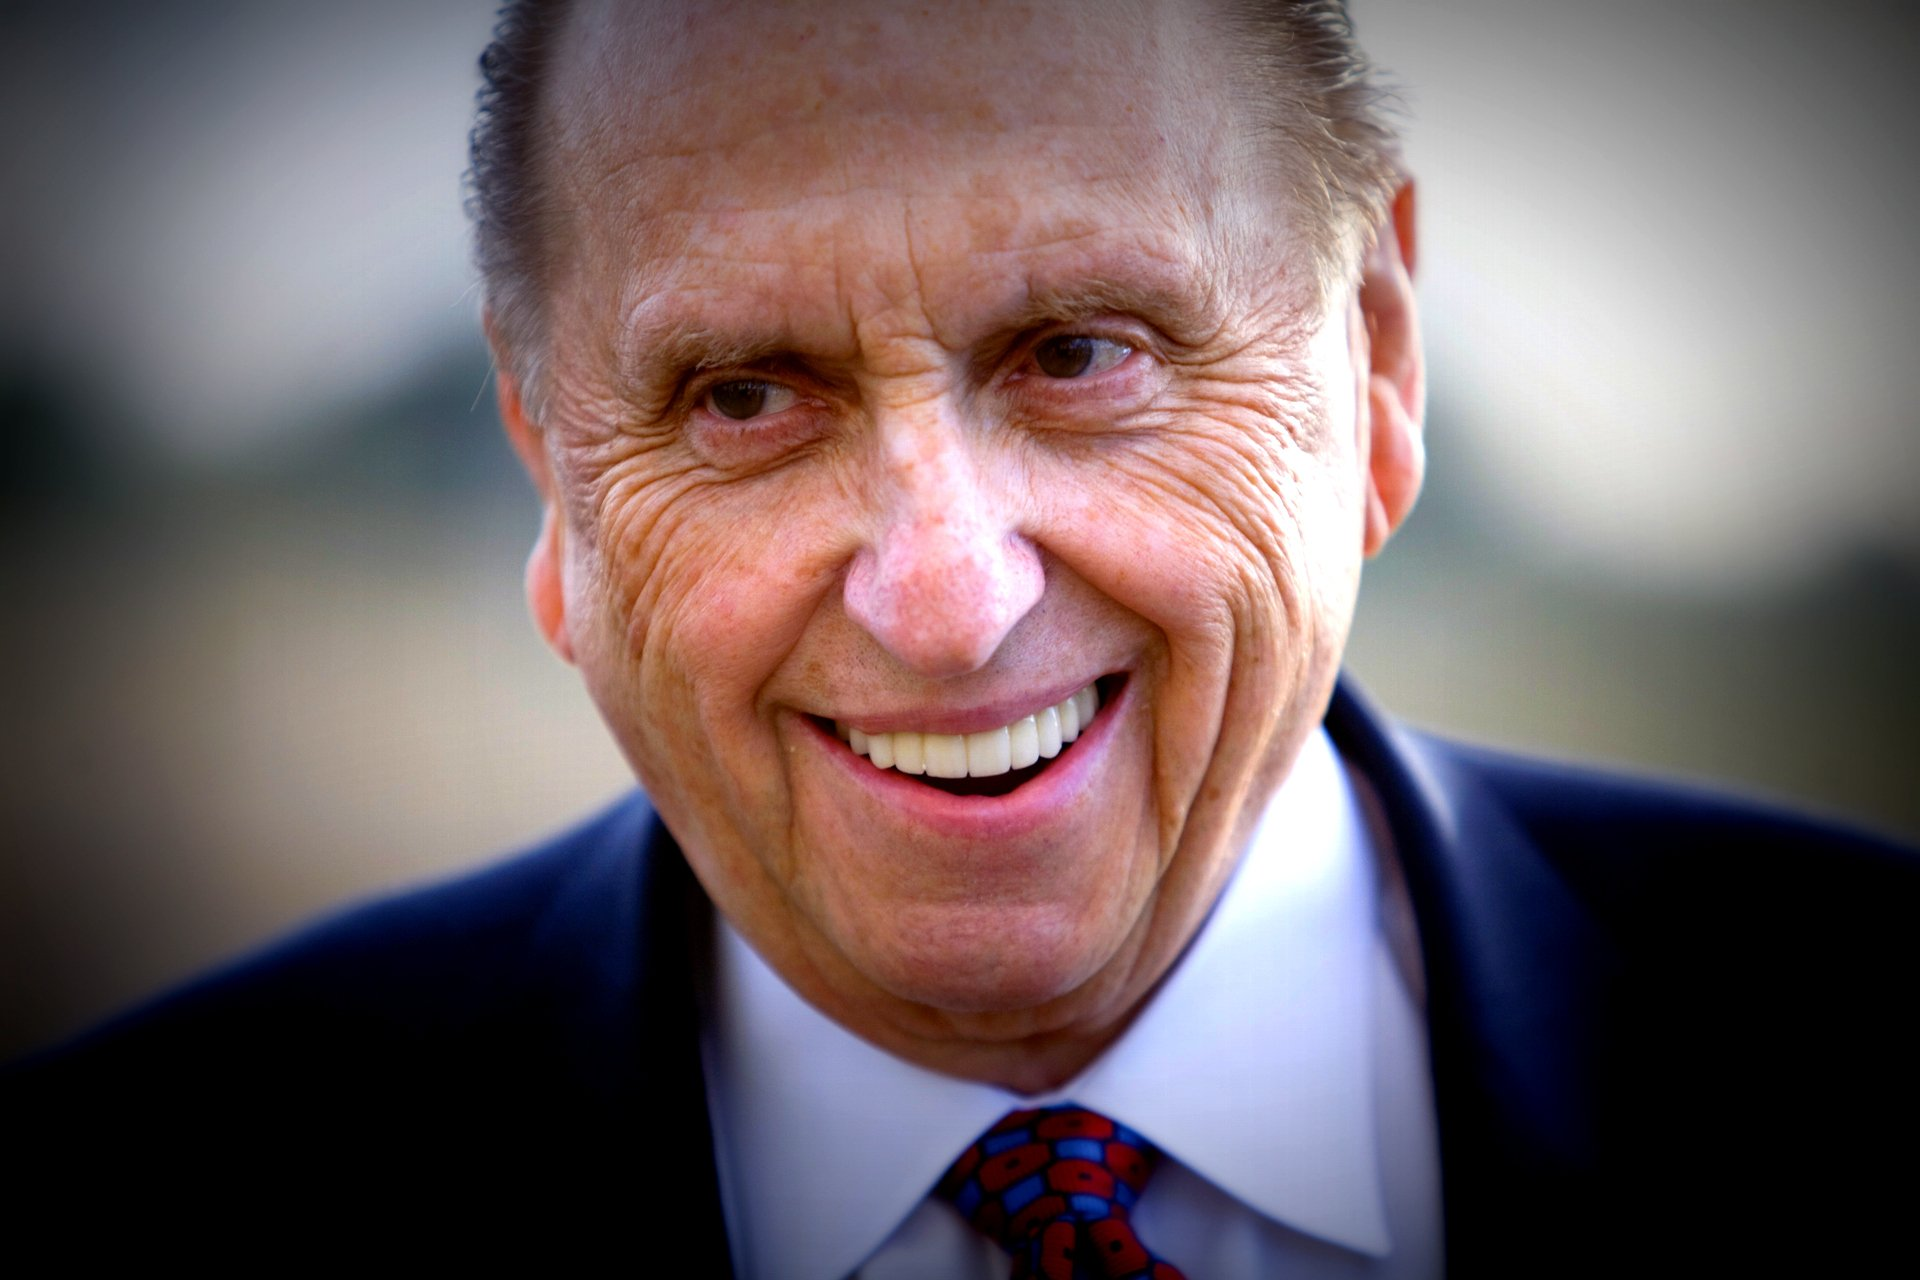 LDS Church President Thomas S. Monson Dies